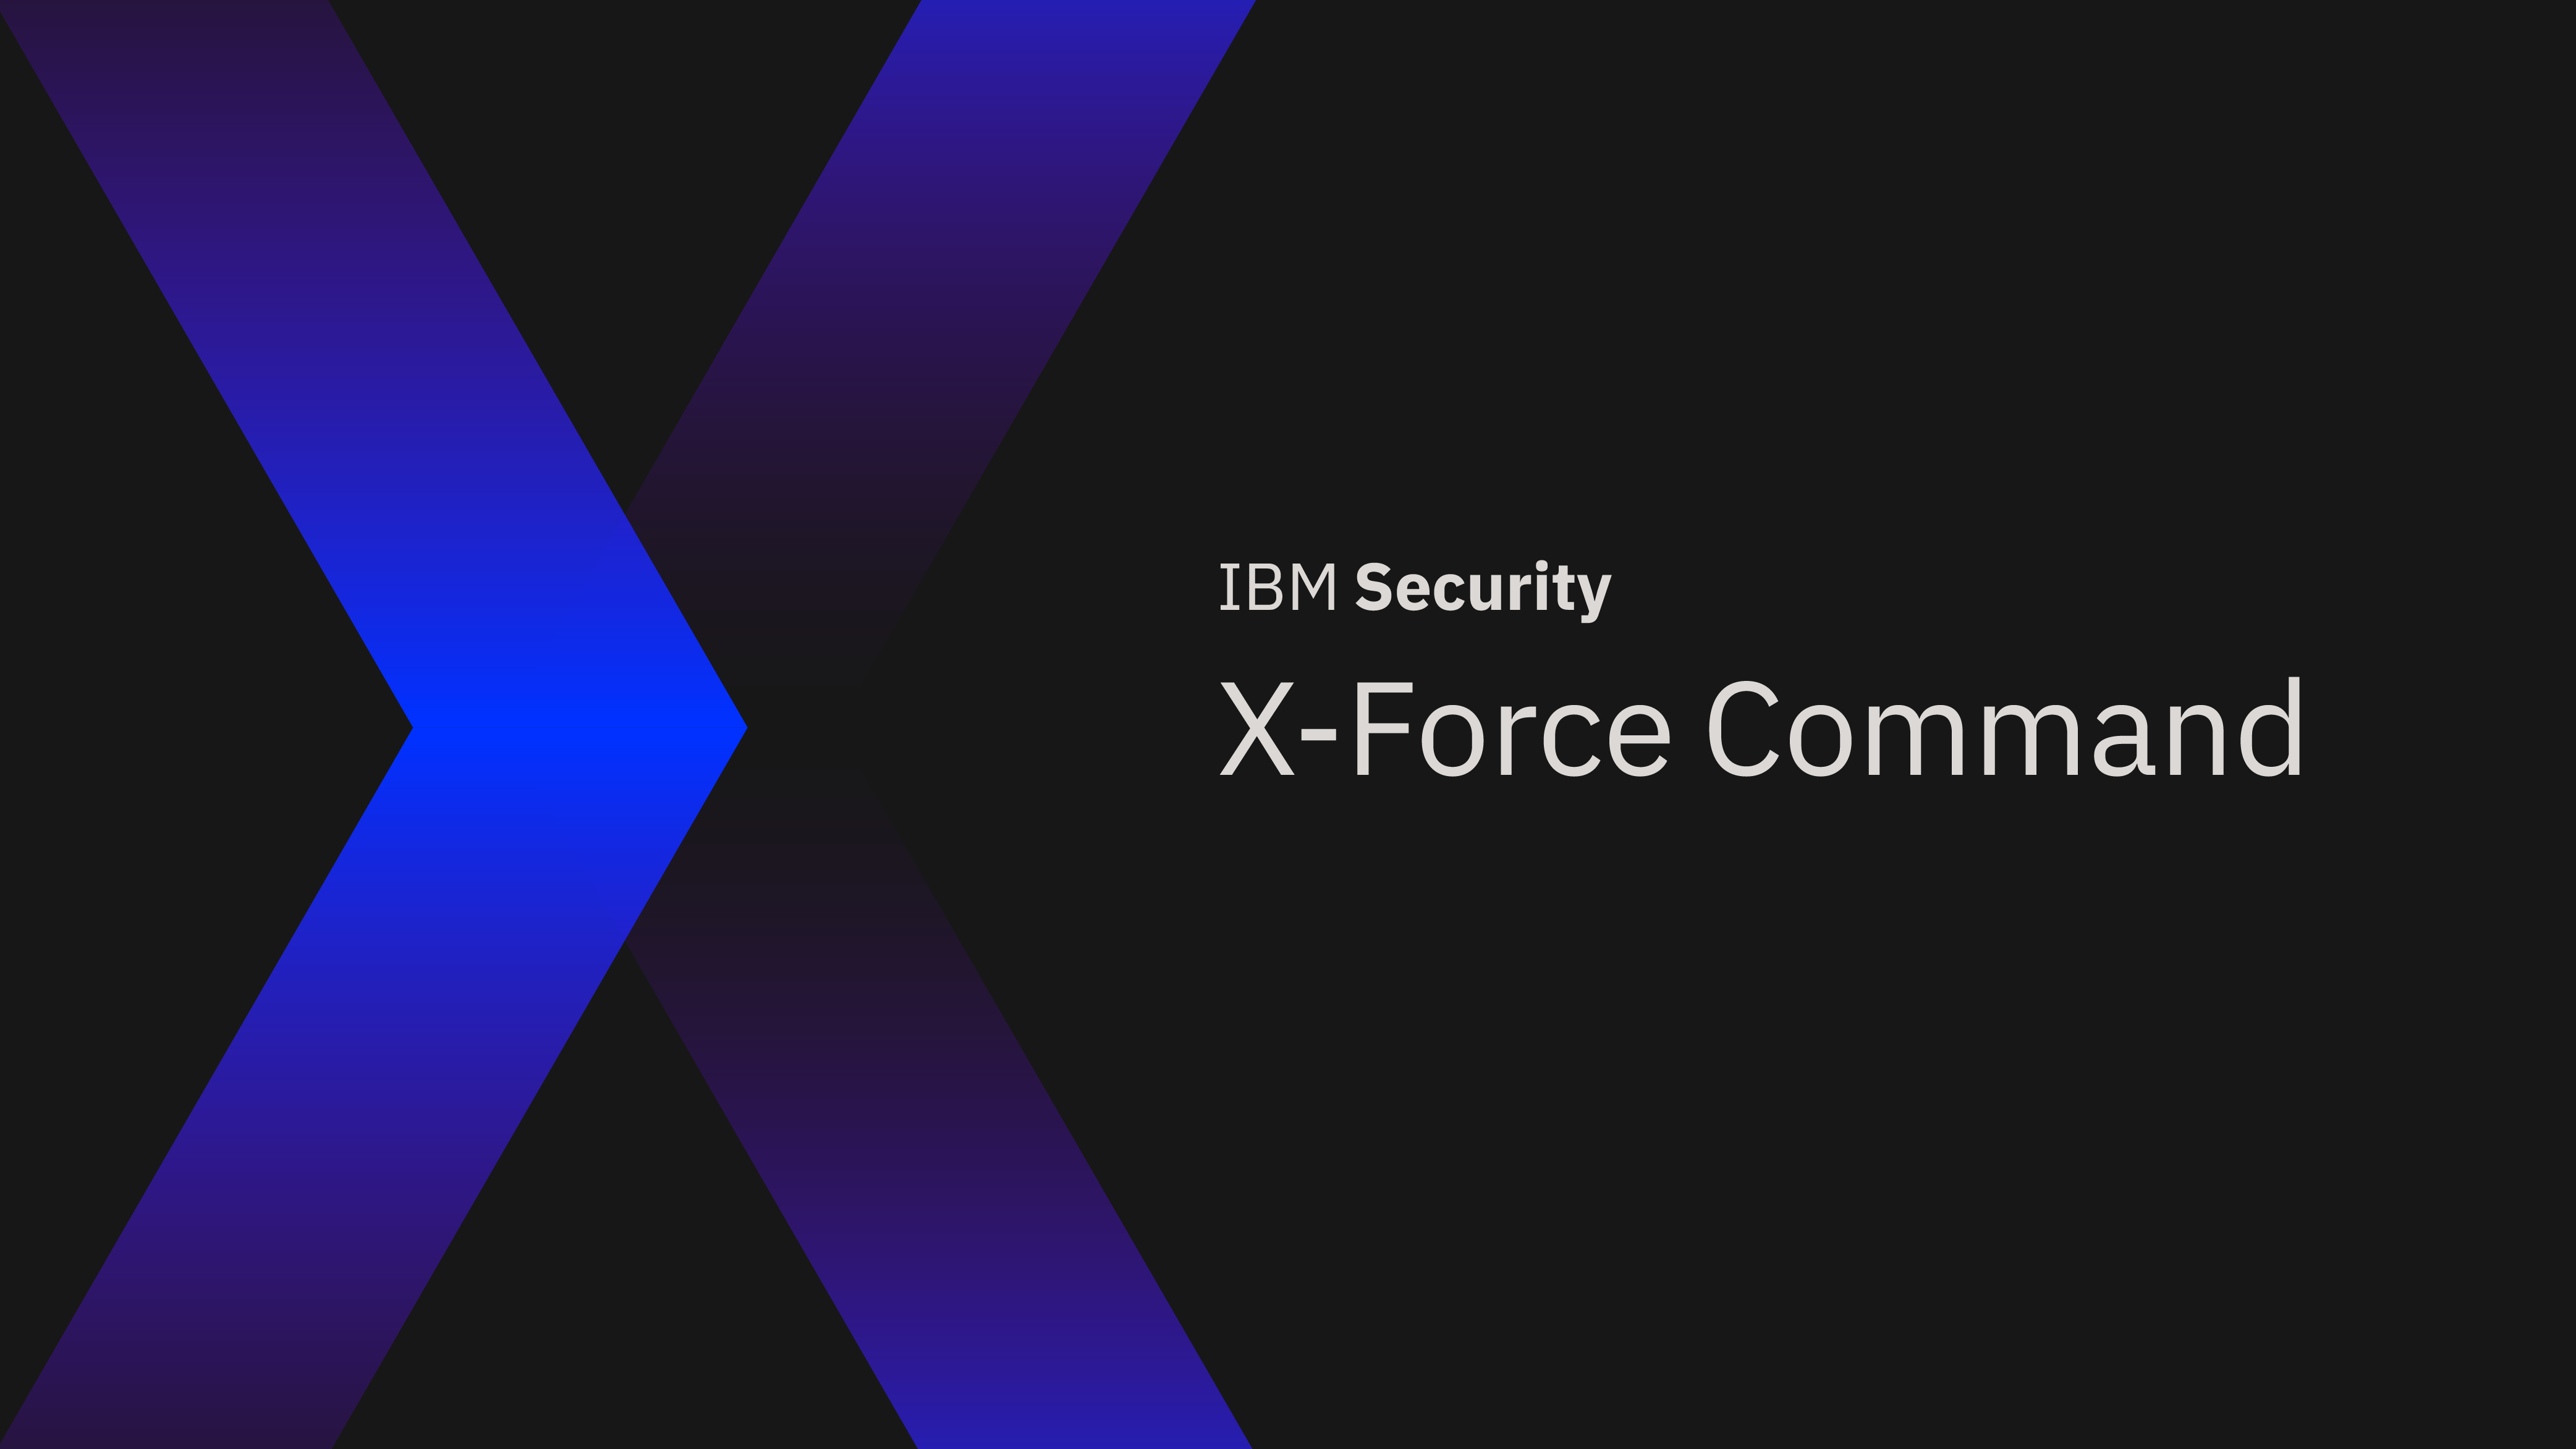 Cover image: X-Force Command, Cyber Tactical Operations Center